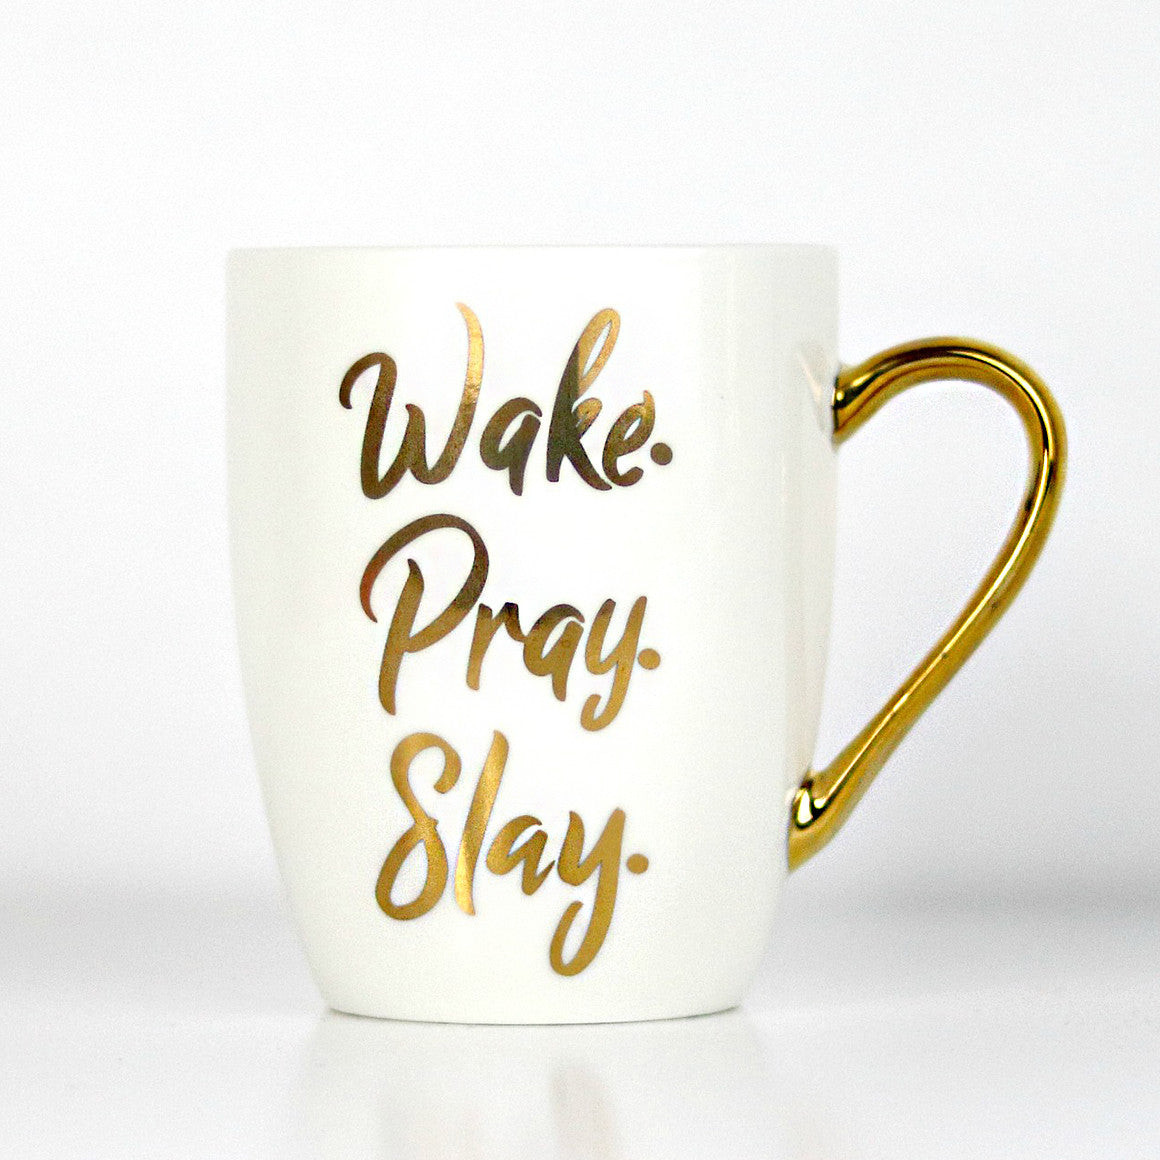 Wake pray slay mug, Christian home decor, Christian Mugs, Christian gifts, Doses of Grace